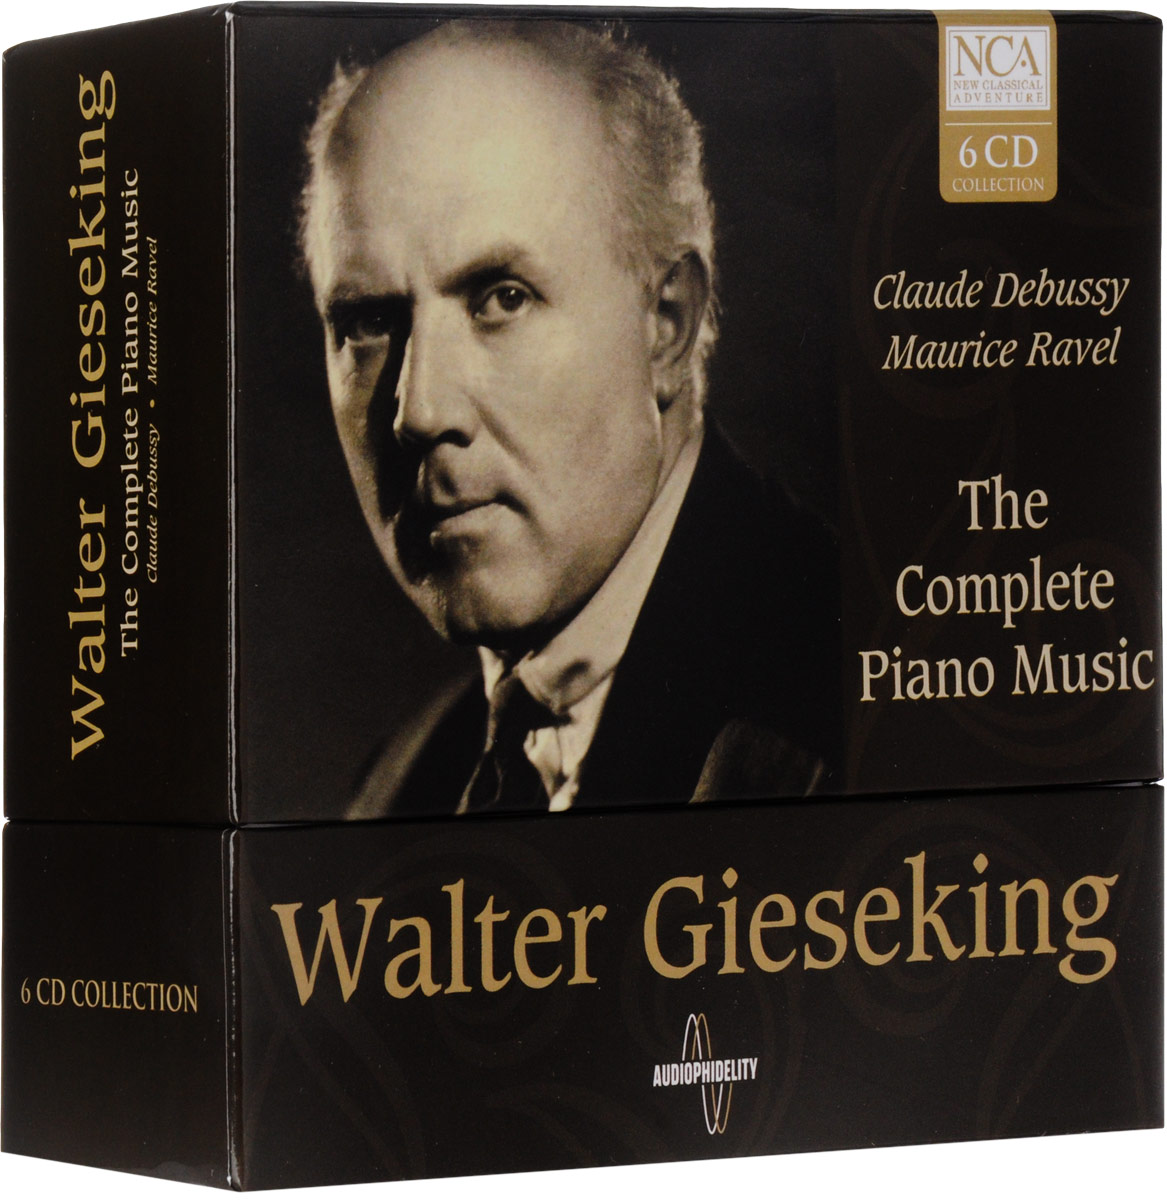 Walter Gieseking. Conplete Piano Music (6 CD)